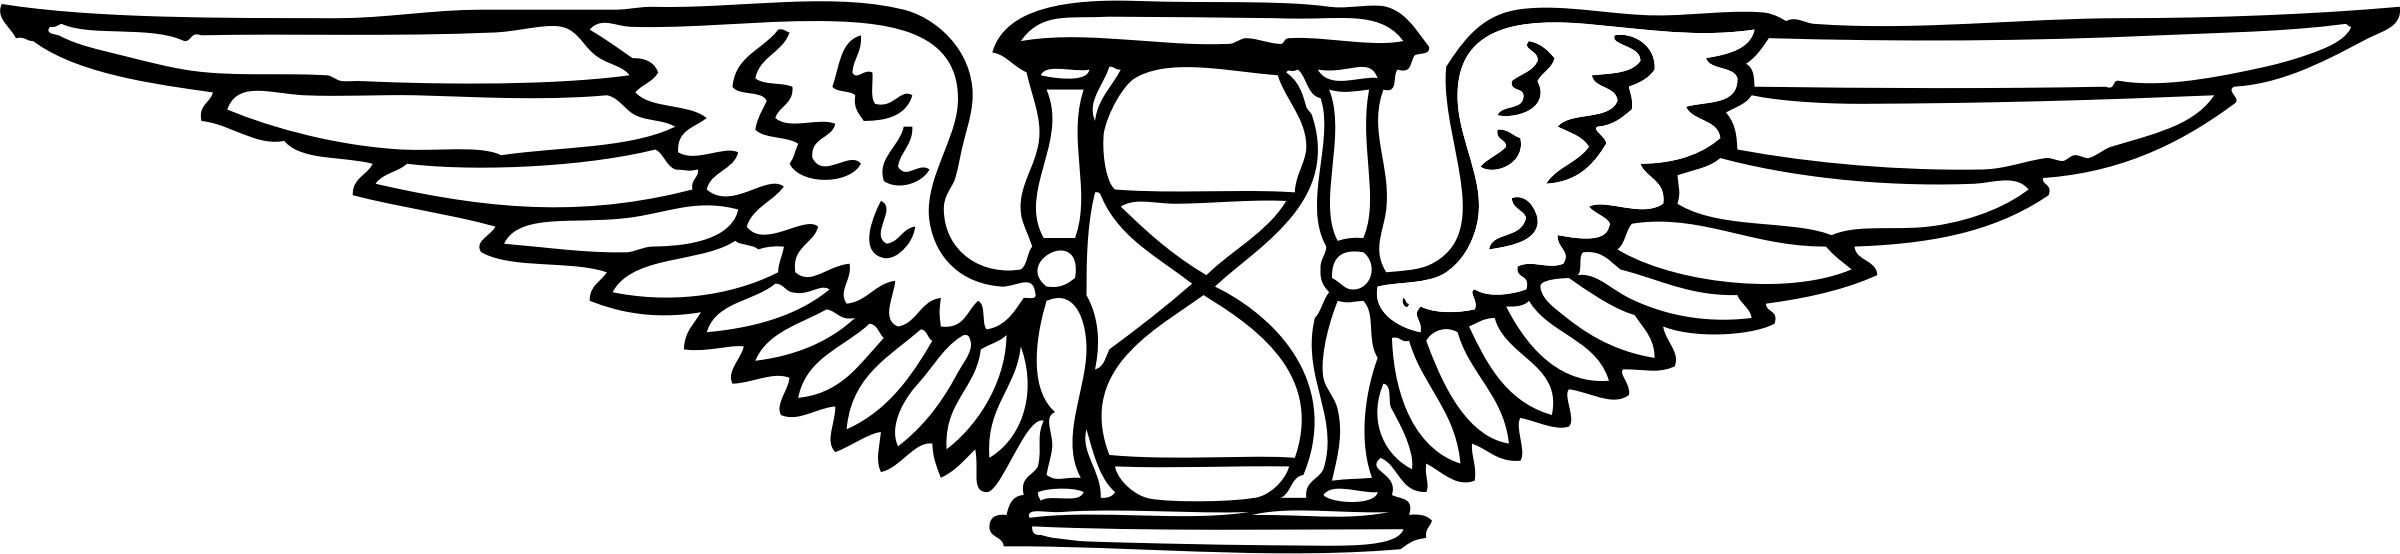 Winged time flies tattoo. Hourglass clipart simple